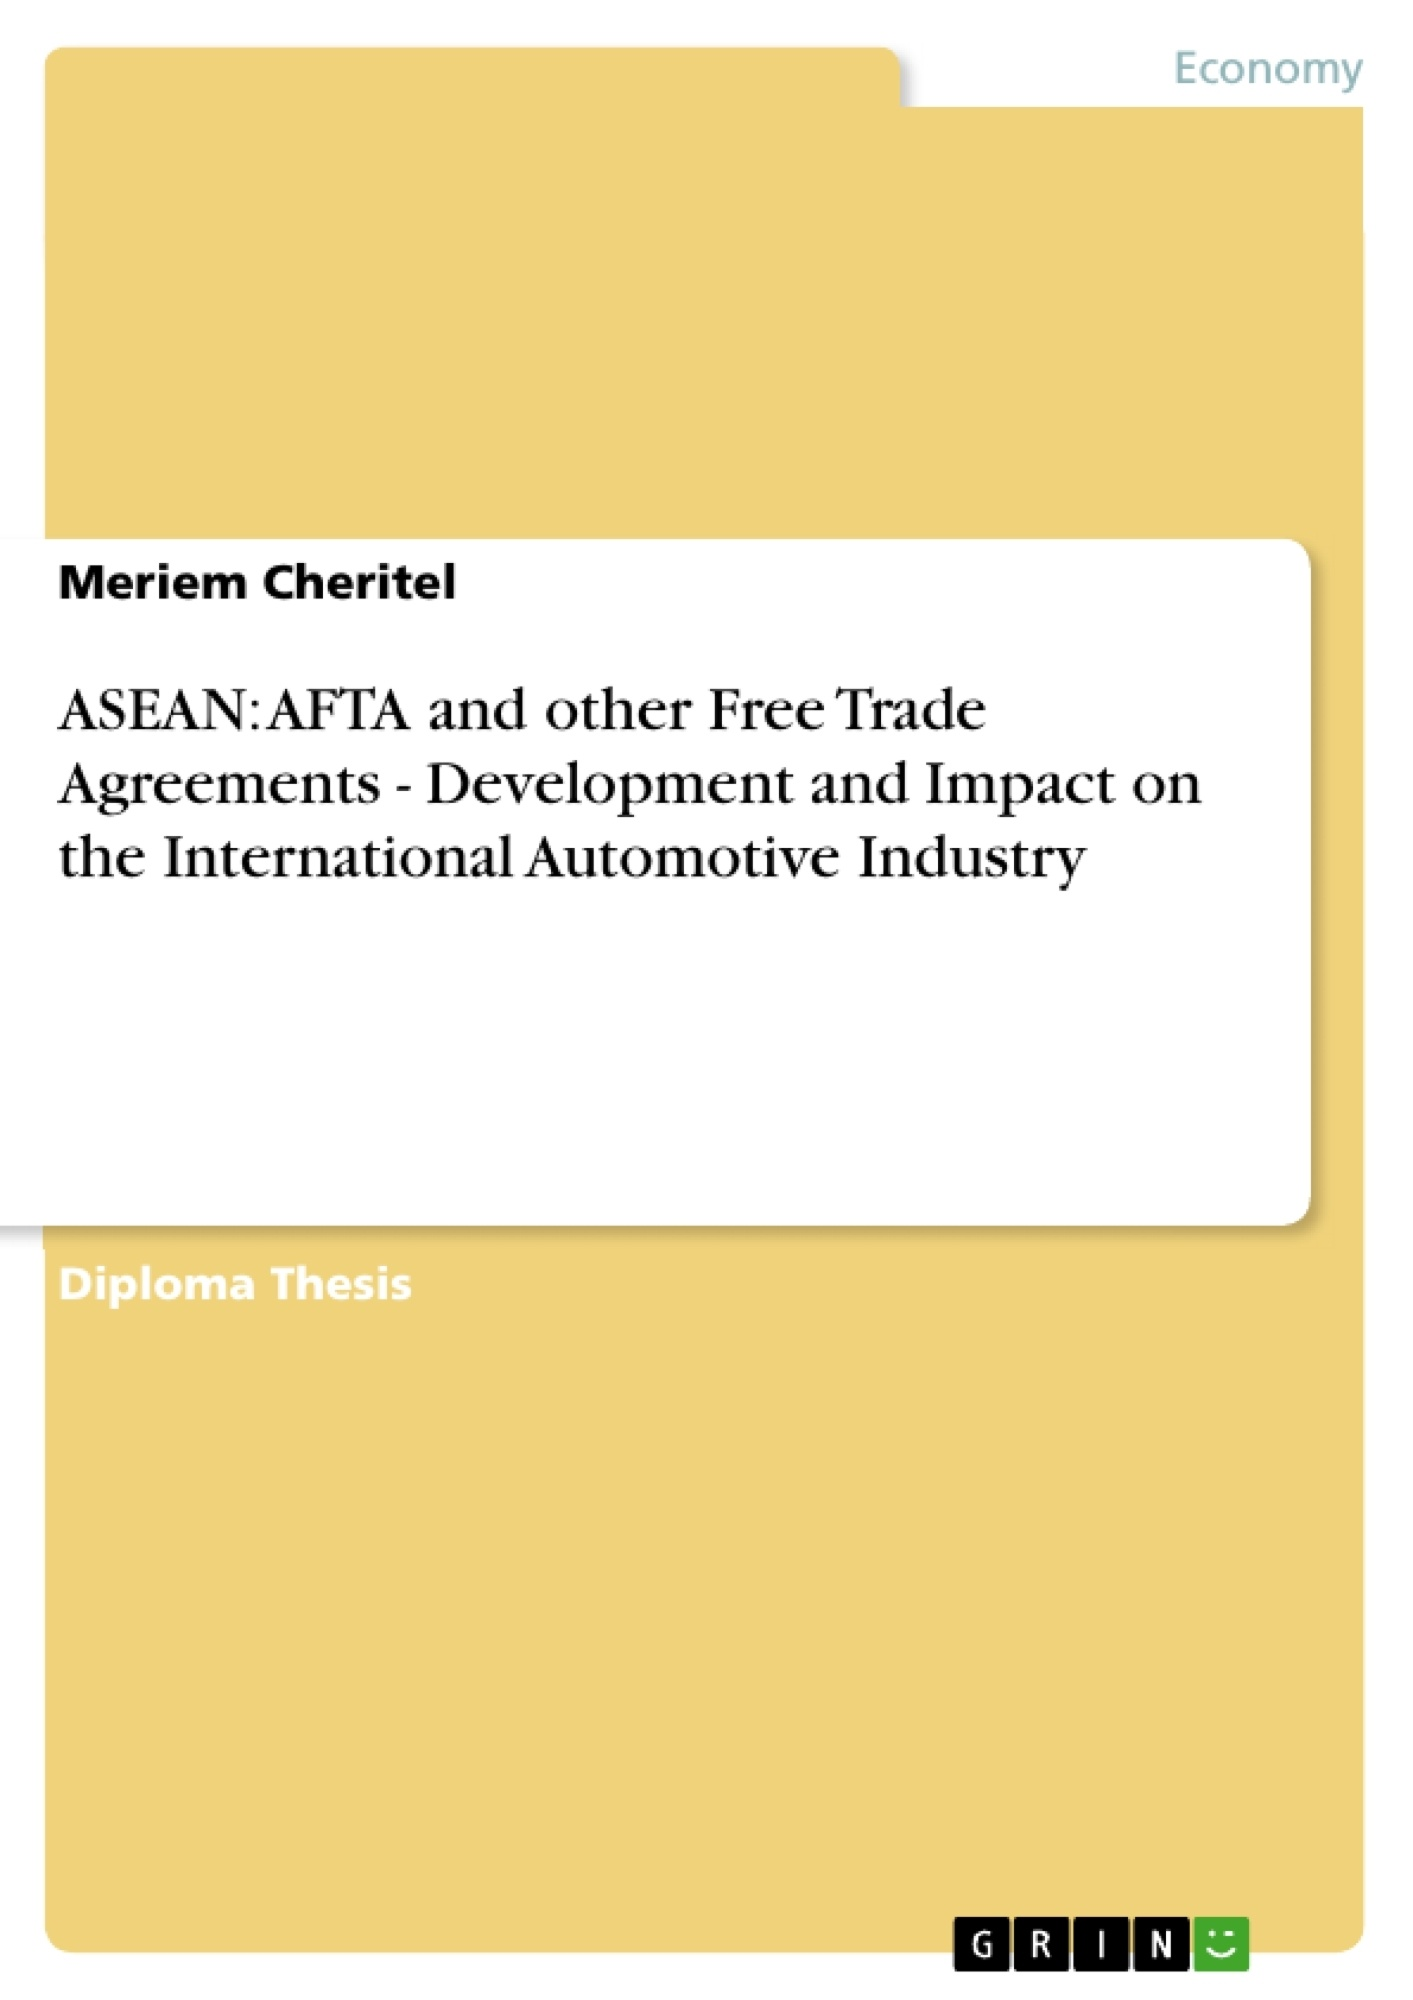 Title: ASEAN: AFTA and other Free Trade Agreements - Development and Impact on the International Automotive Industry